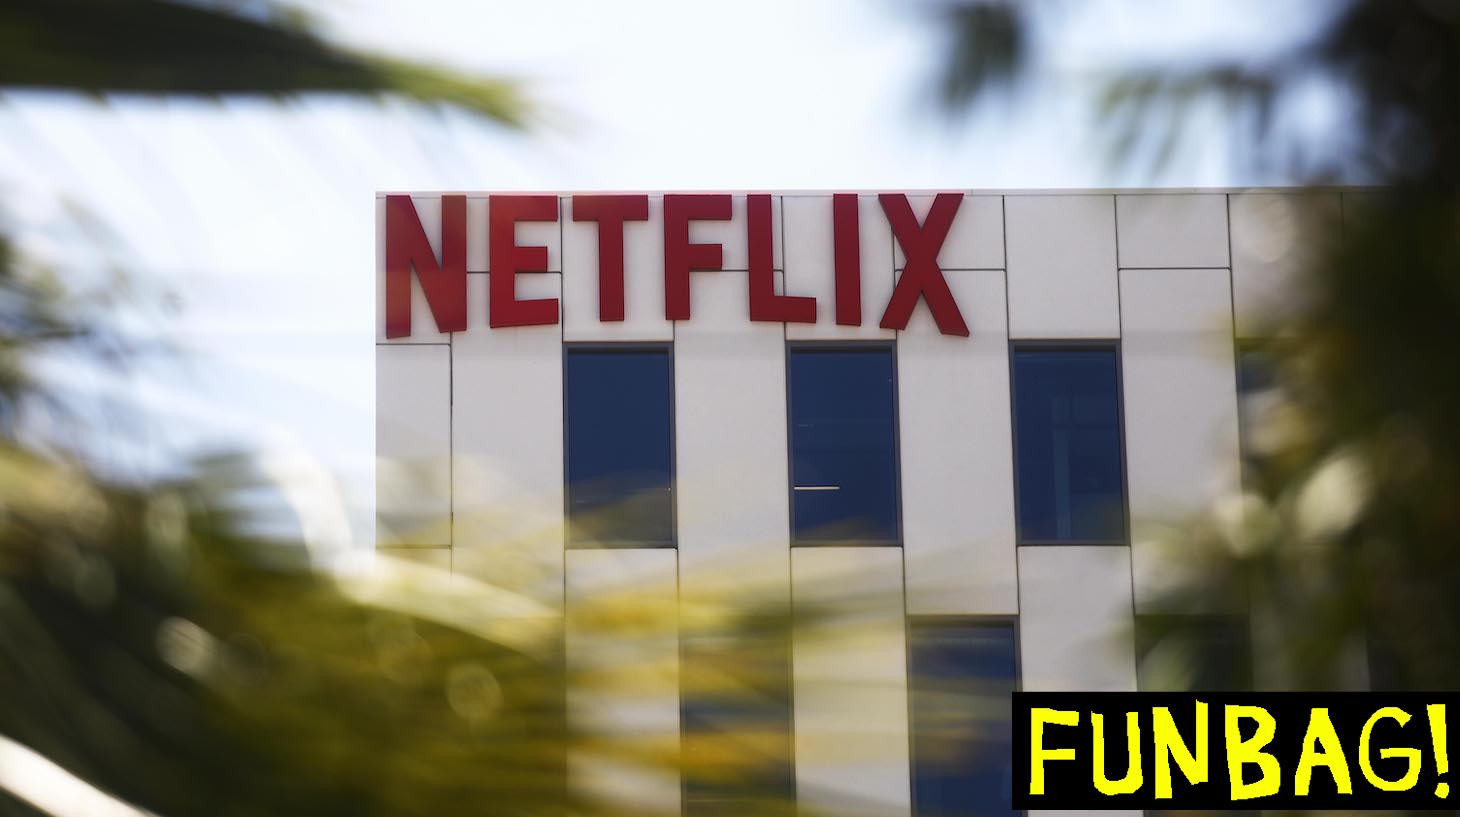 LOS ANGELES, CALIFORNIA - MAY 29: The Netflix logo is displayed at Netflix offices on Sunset Boulevard on May 29, 2019 in Los Angeles, California. Netflix chief content officer Ted Sarandos said the company will reconsider their 'entire investment' in Georgia if a strict new abortion law is not overturned in the state. According to state data, the film industry in Georgia contributed $2.7 billion in direct spending while supporting 92,000 local jobs. (Photo by Mario Tama/Getty Images)